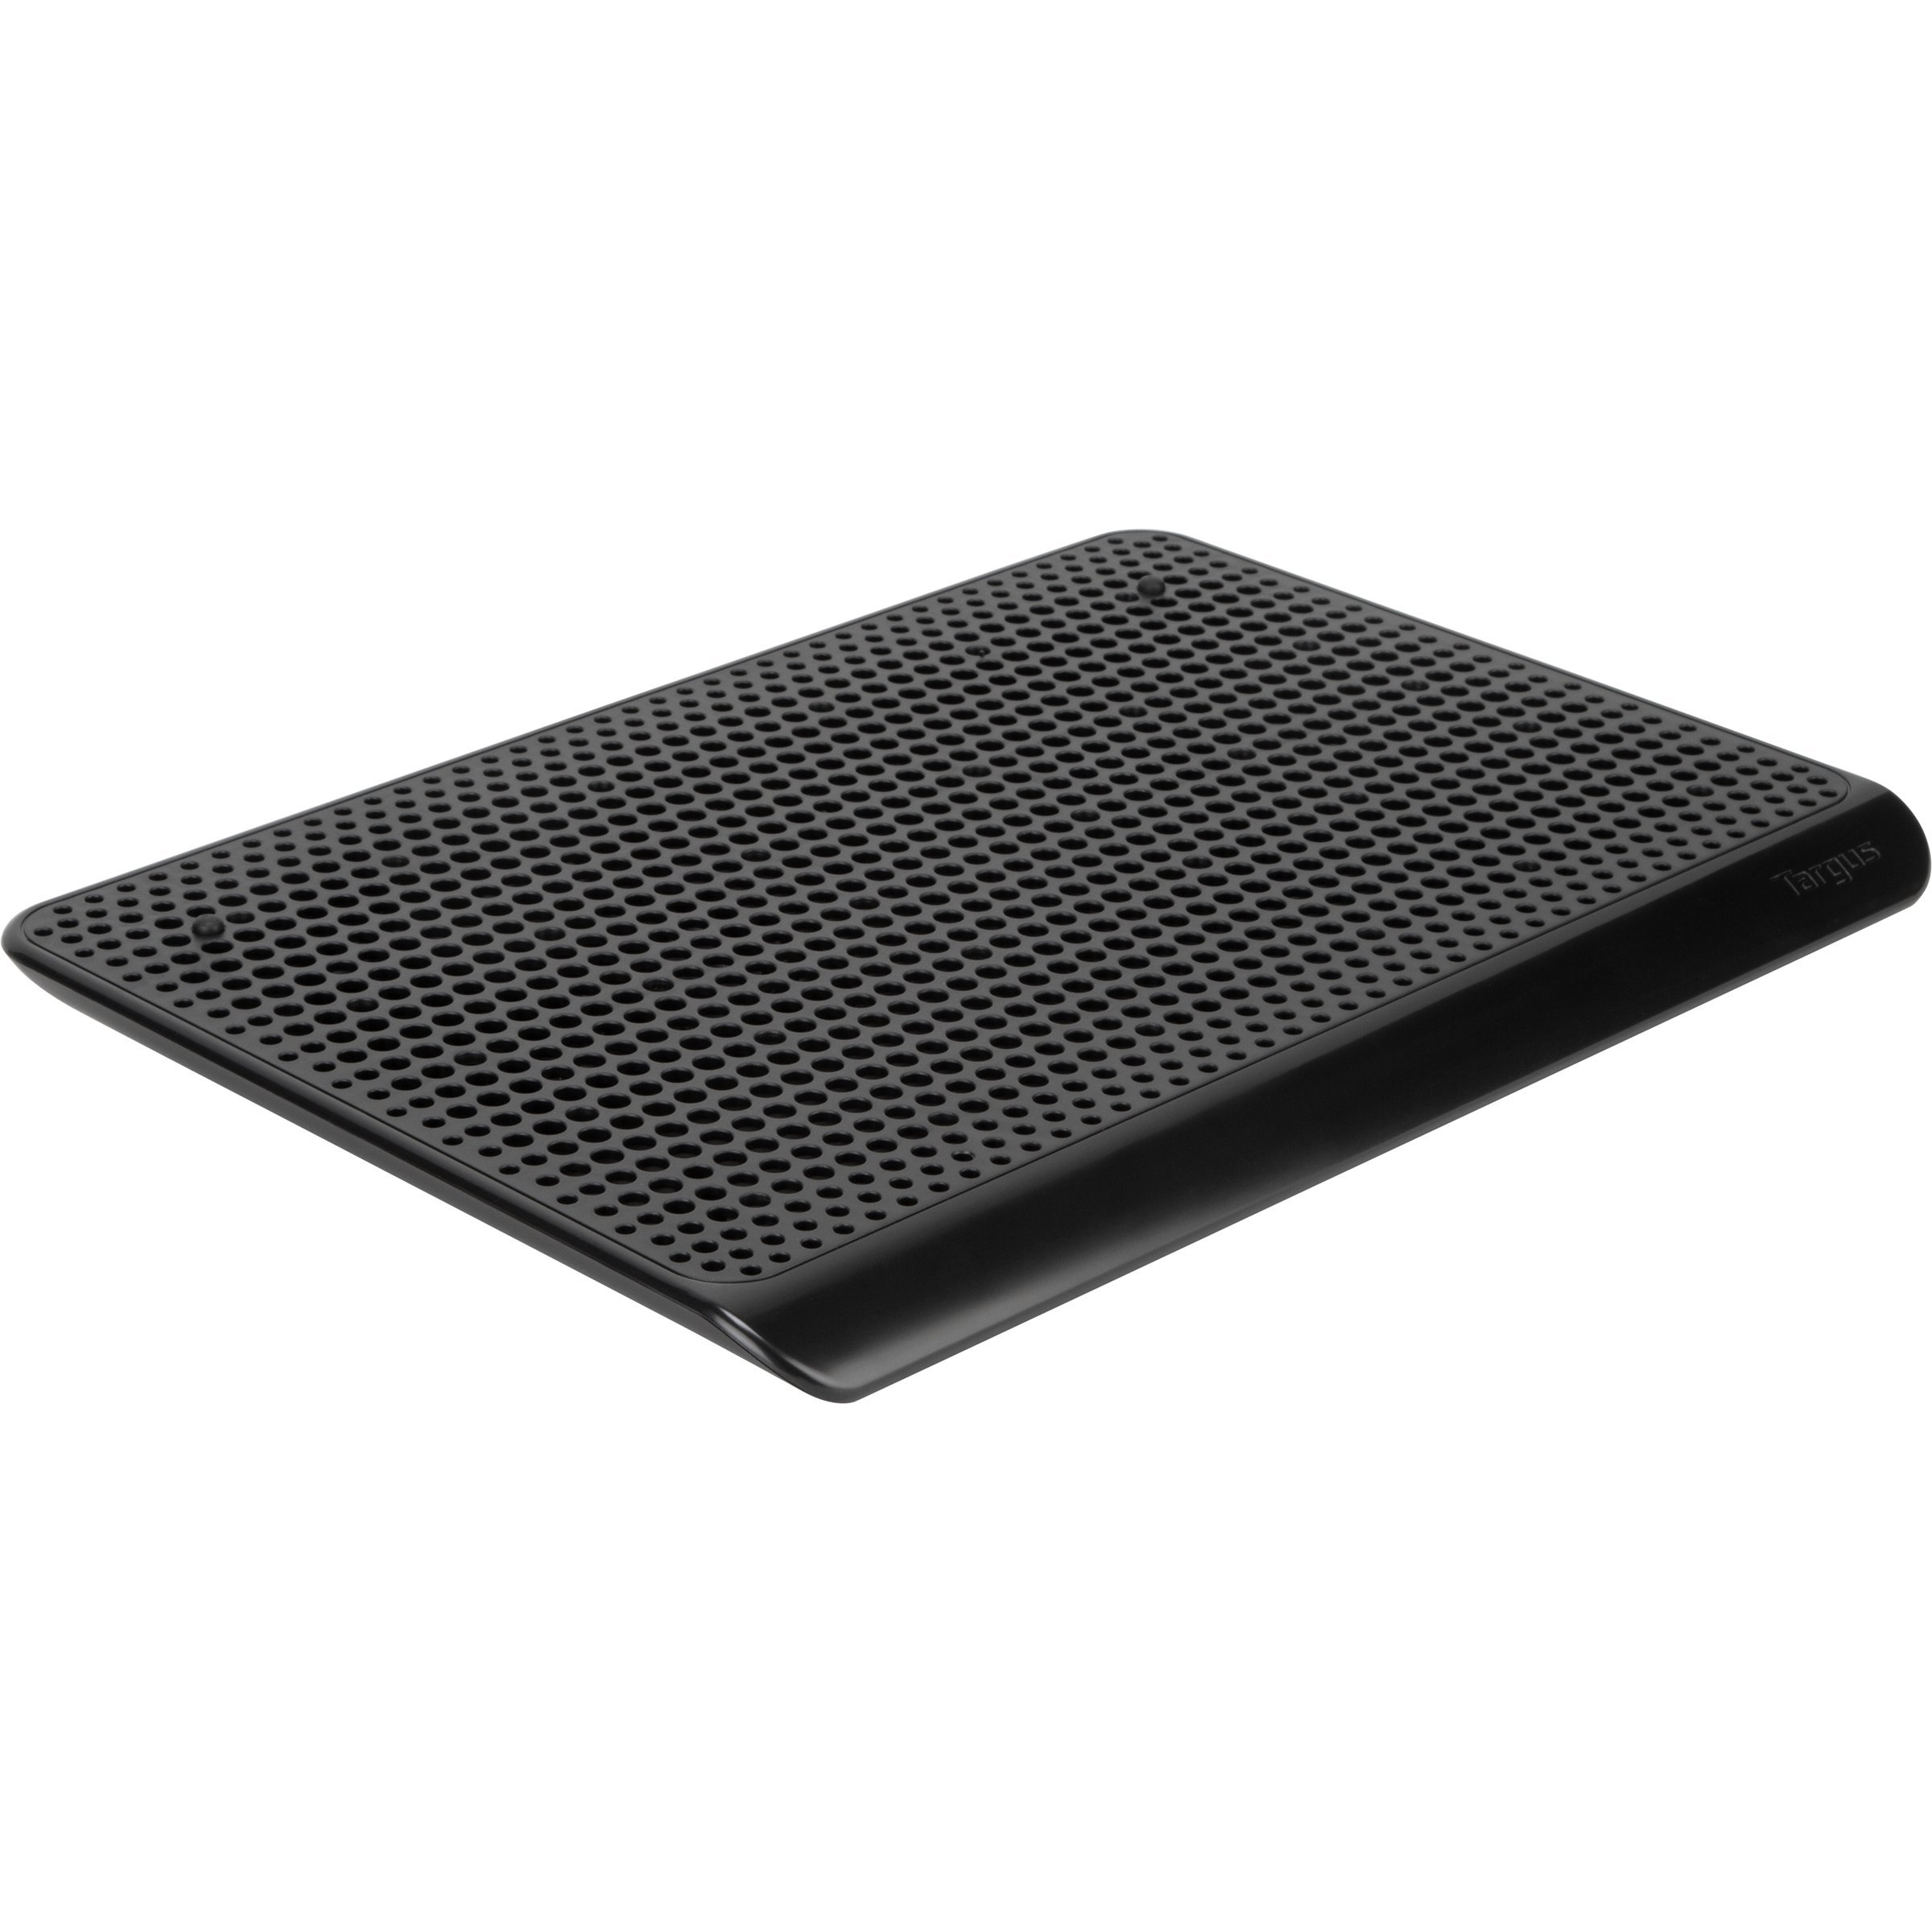 Targus Certified Pre-Owned Dual Fan Chill Mat for Laptop up to 16 Inches, 13.5 x 9.25 x 1 Inches, Black (AWE61US, Refurbished) by Targus (Image #1)